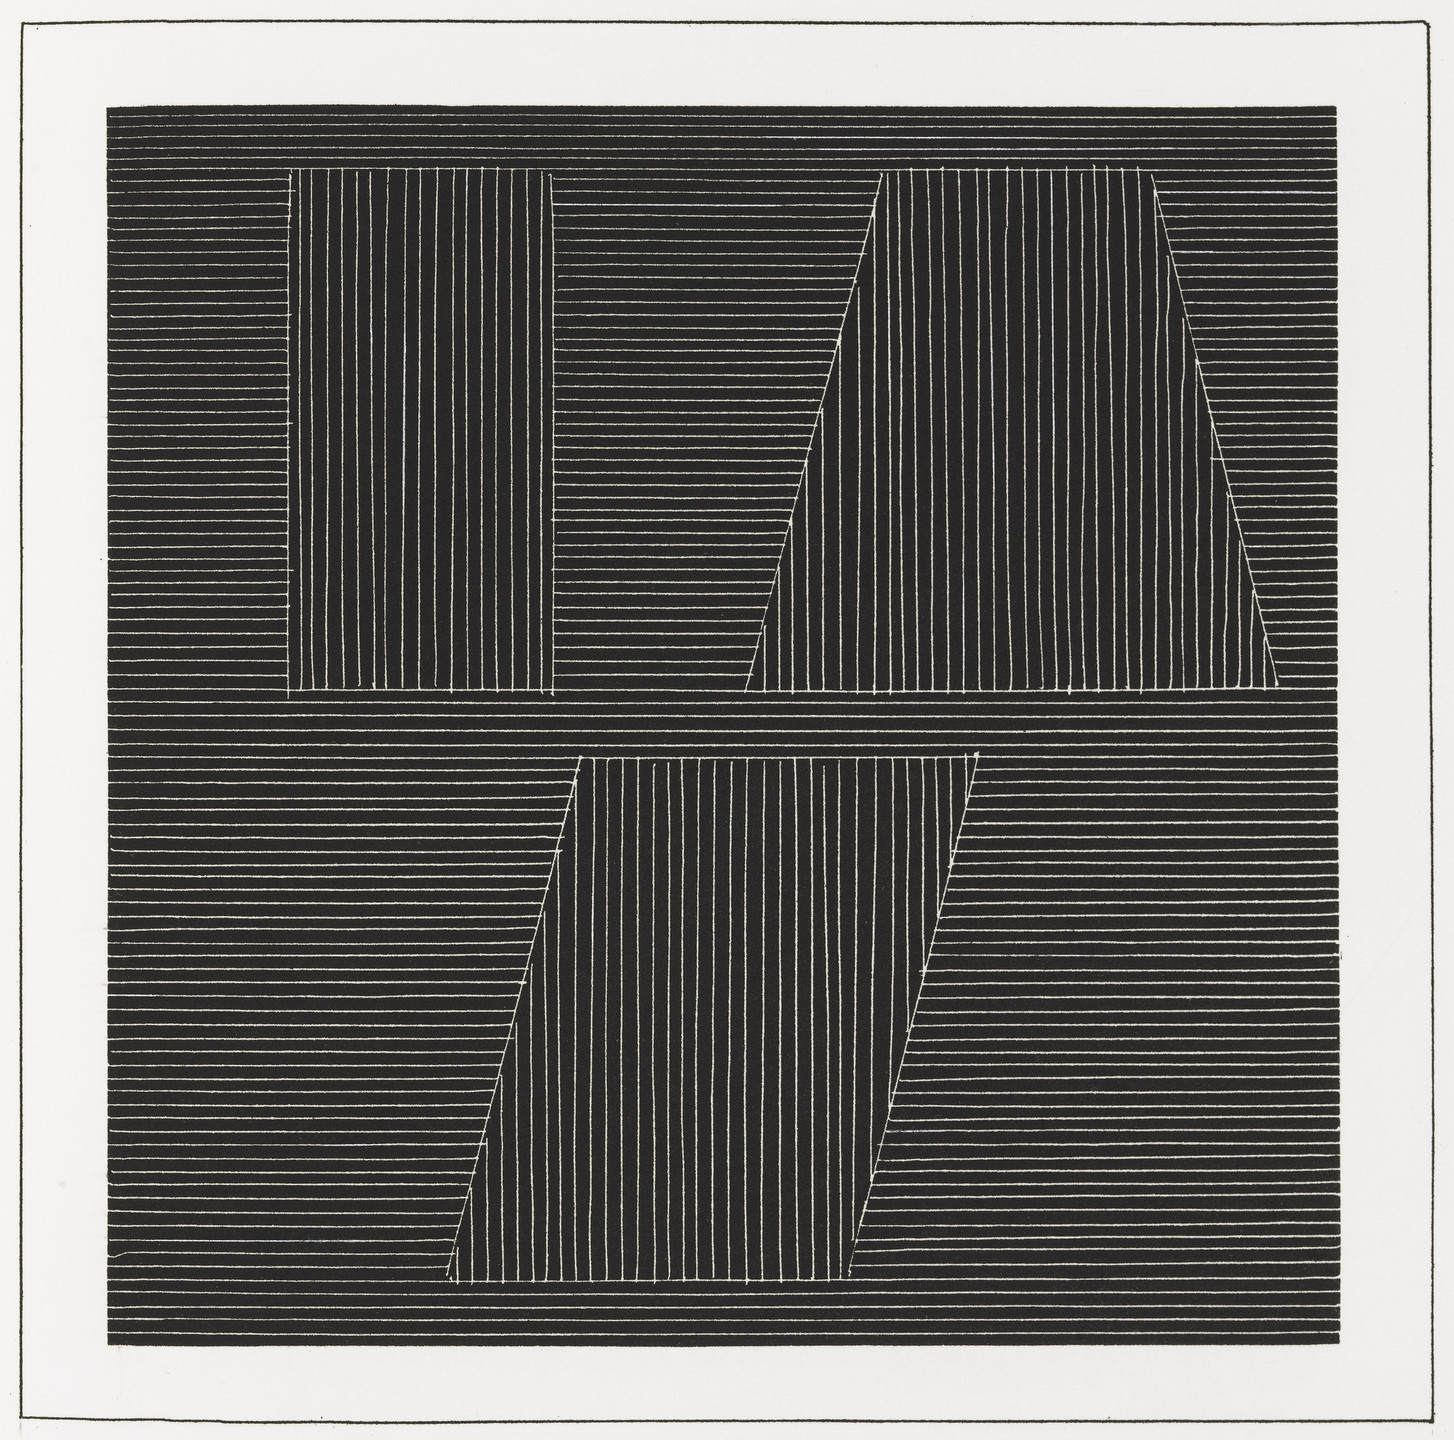 Sol LeWitt. Plate (folio 42) from Six Geometric Figures and All Their Combinations, Volume I. 1980